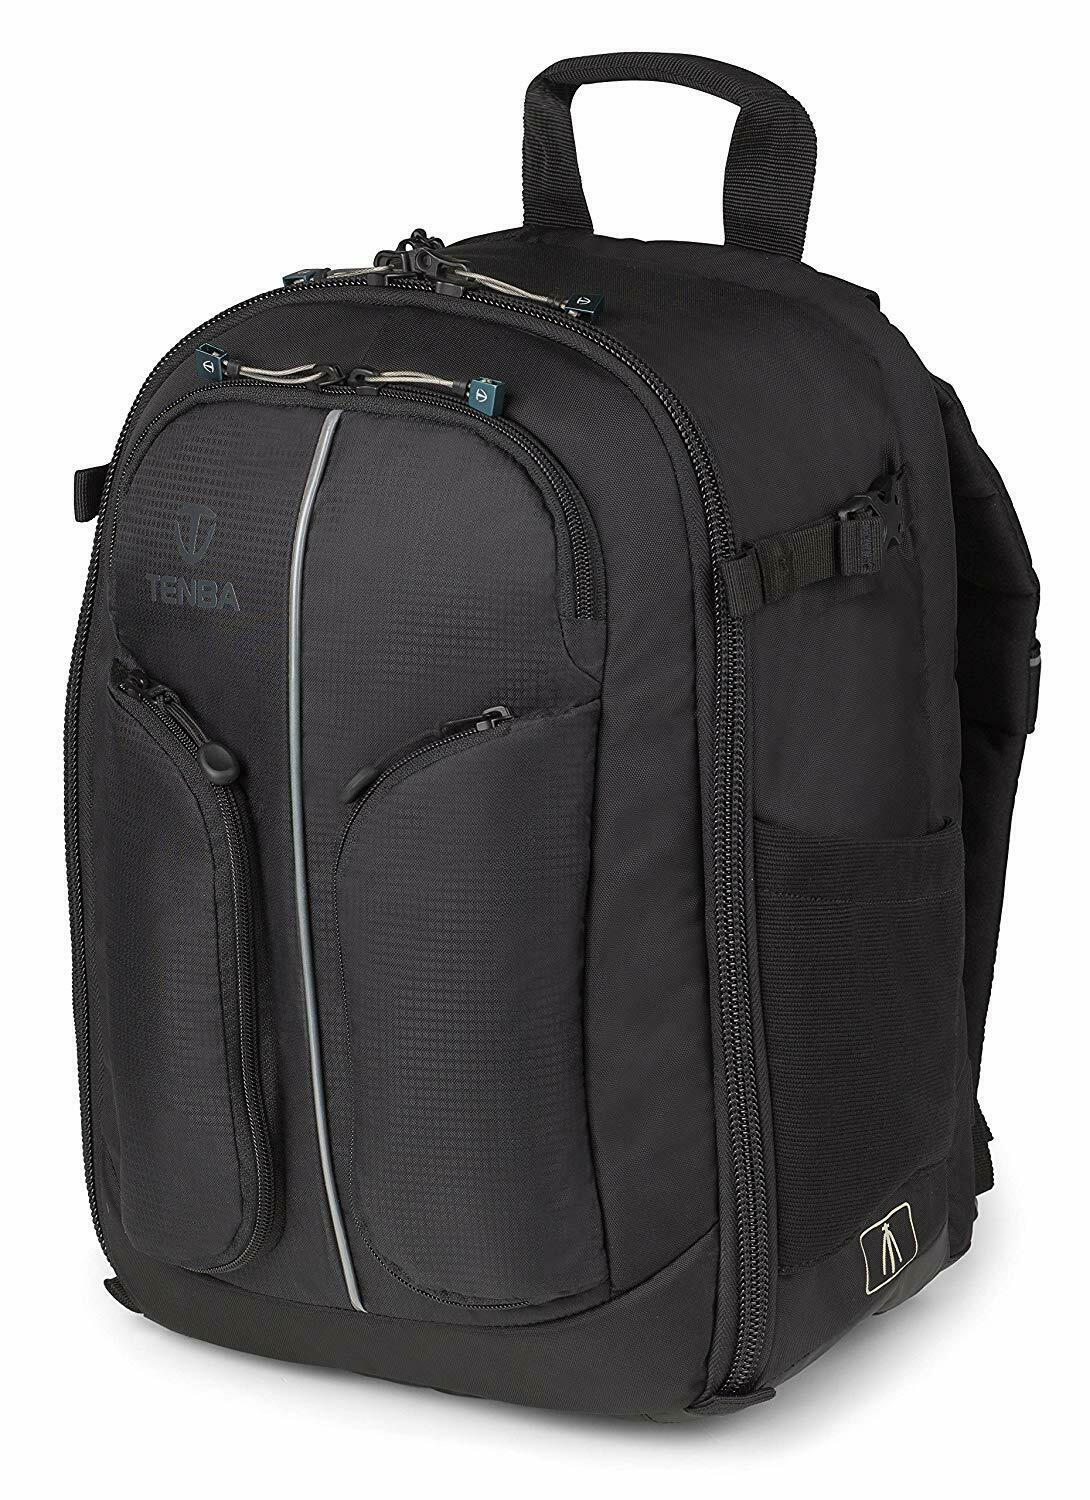 Tenba Shootout 18L Backpack Black